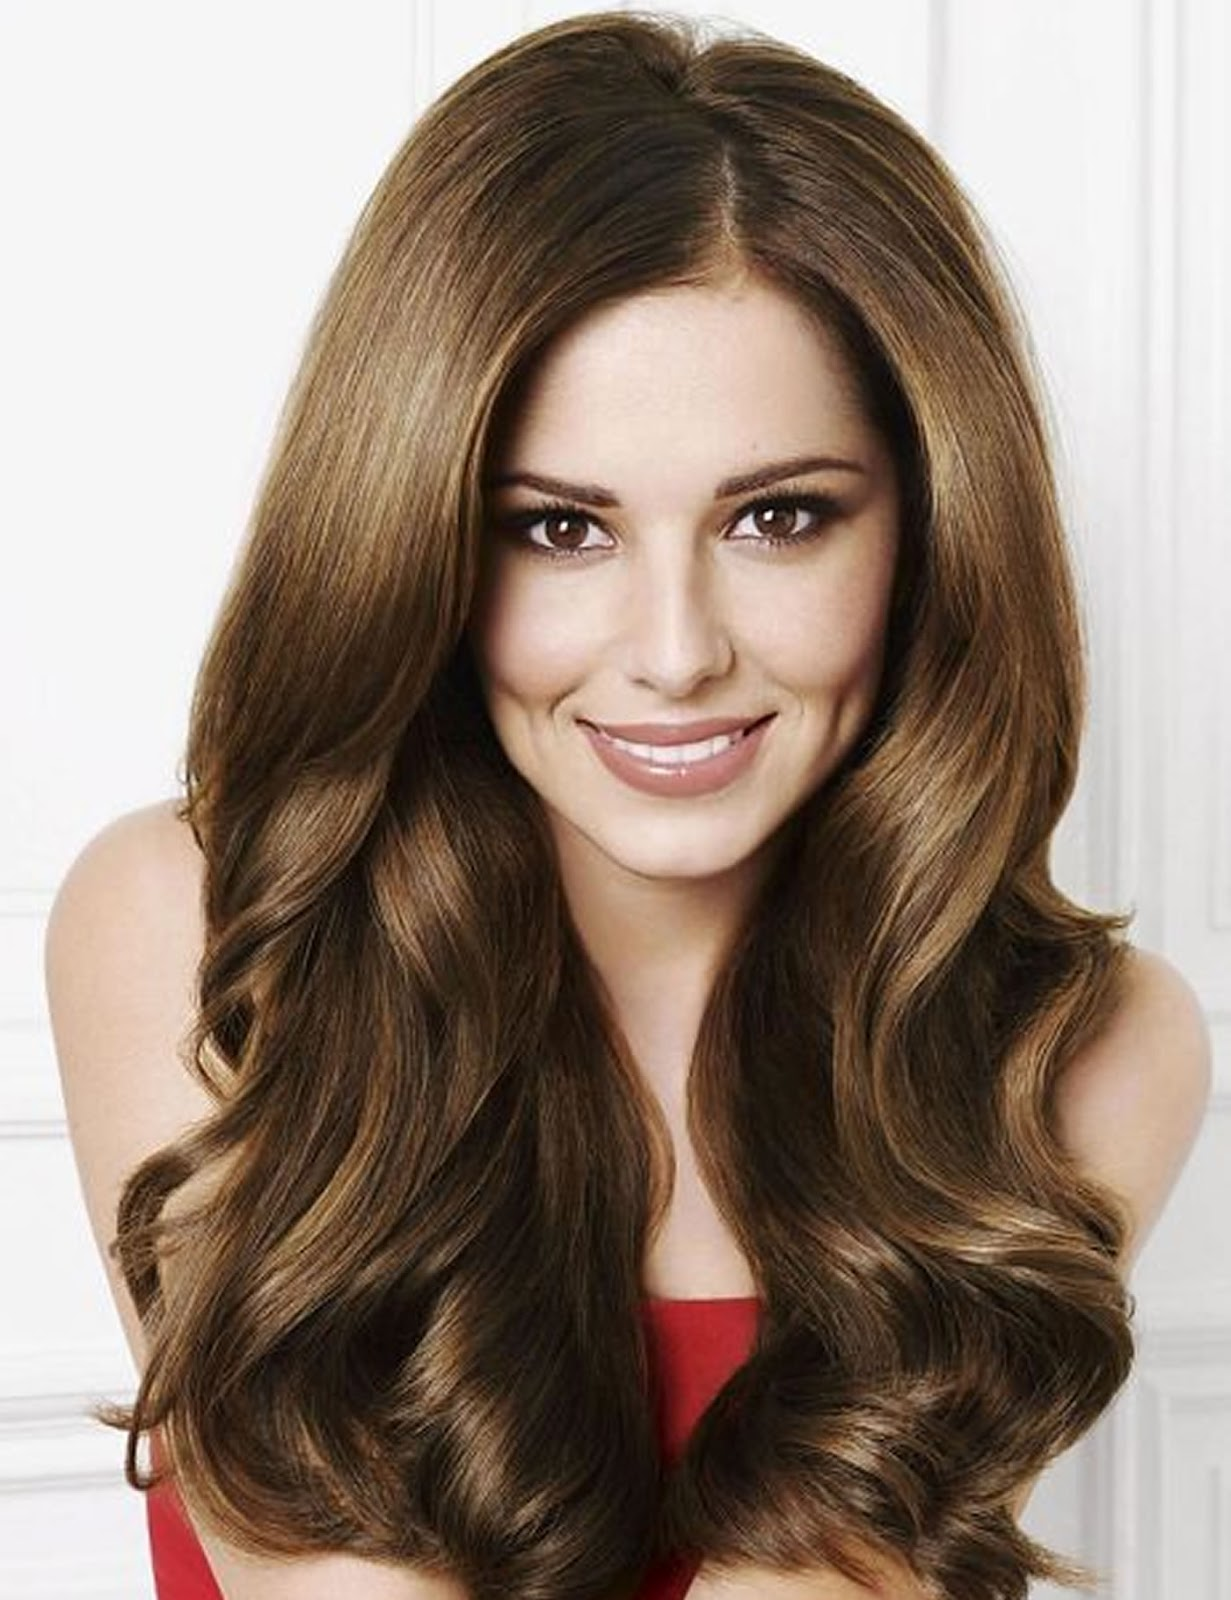 Hair Extensions Types: Cheryl Cole's Hair Extensions 2012